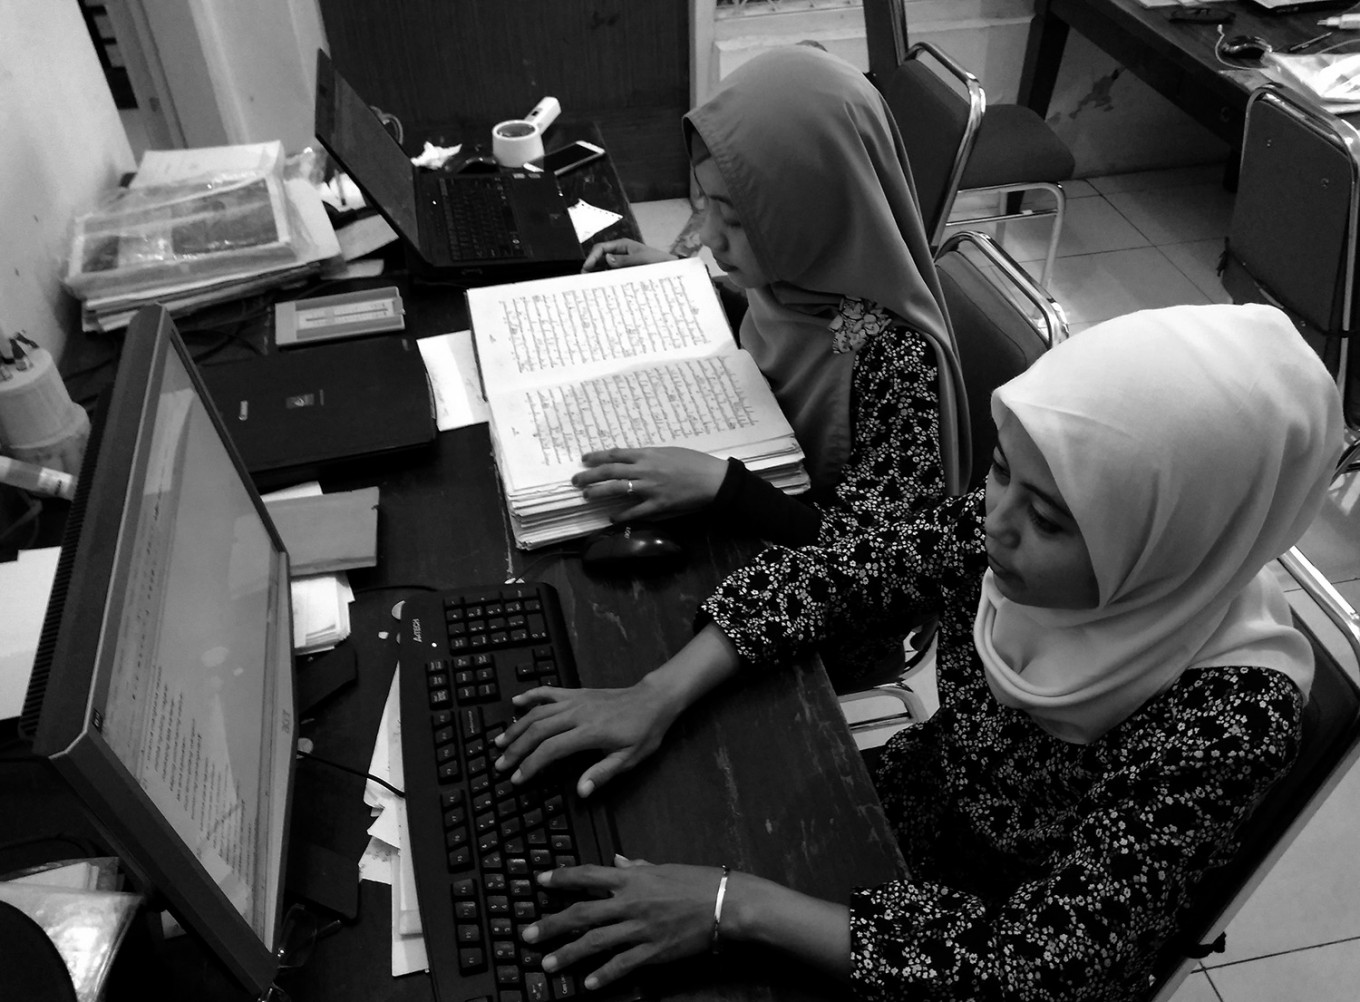 The rewriting process is done in pairs. One staff member reads while another types. JP/Ganug Nugroho Adi